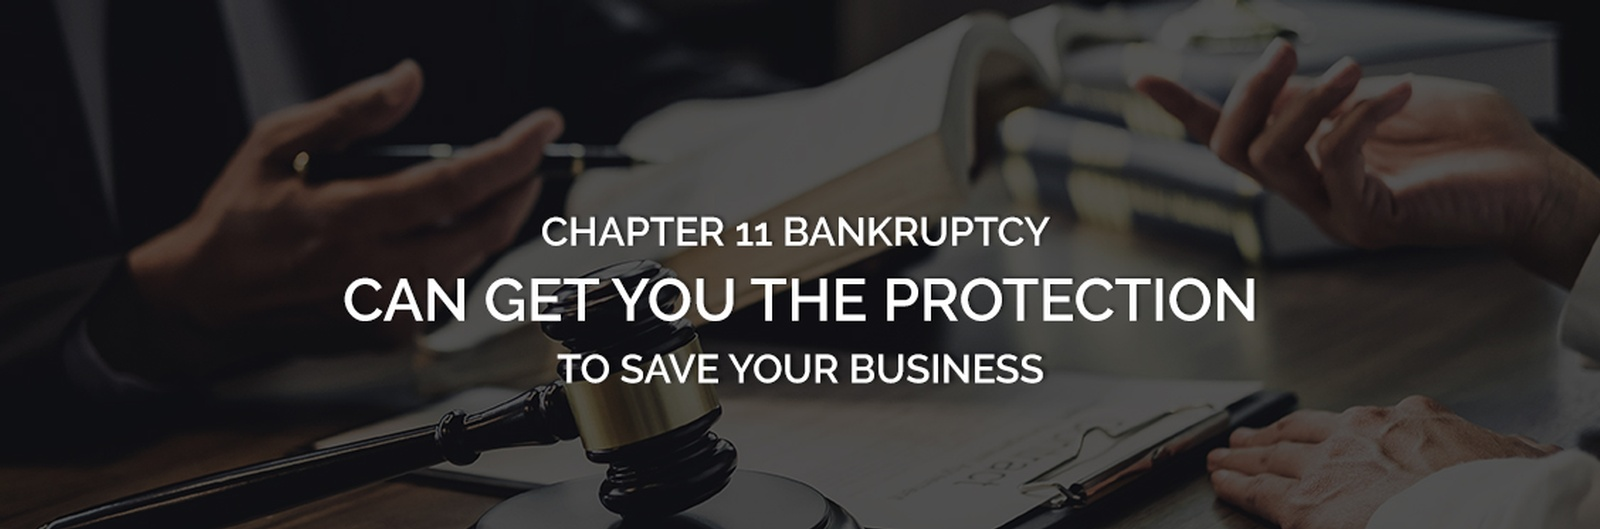 Chapter 11 Bankruptcy Attorney St Cloud Minnesota